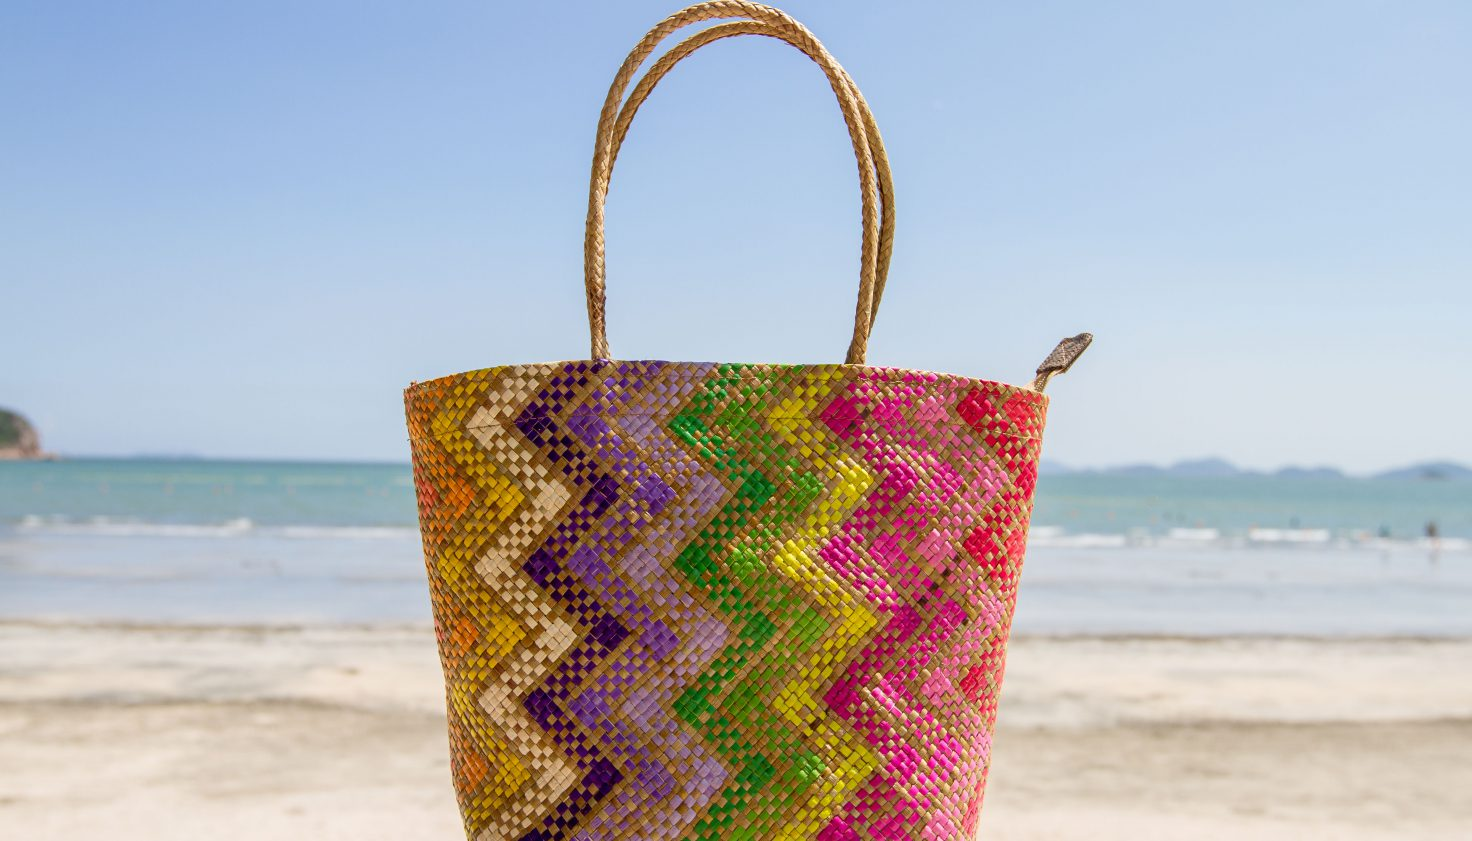 David Roden Medium Woven Abaca Rainbow Bag 2